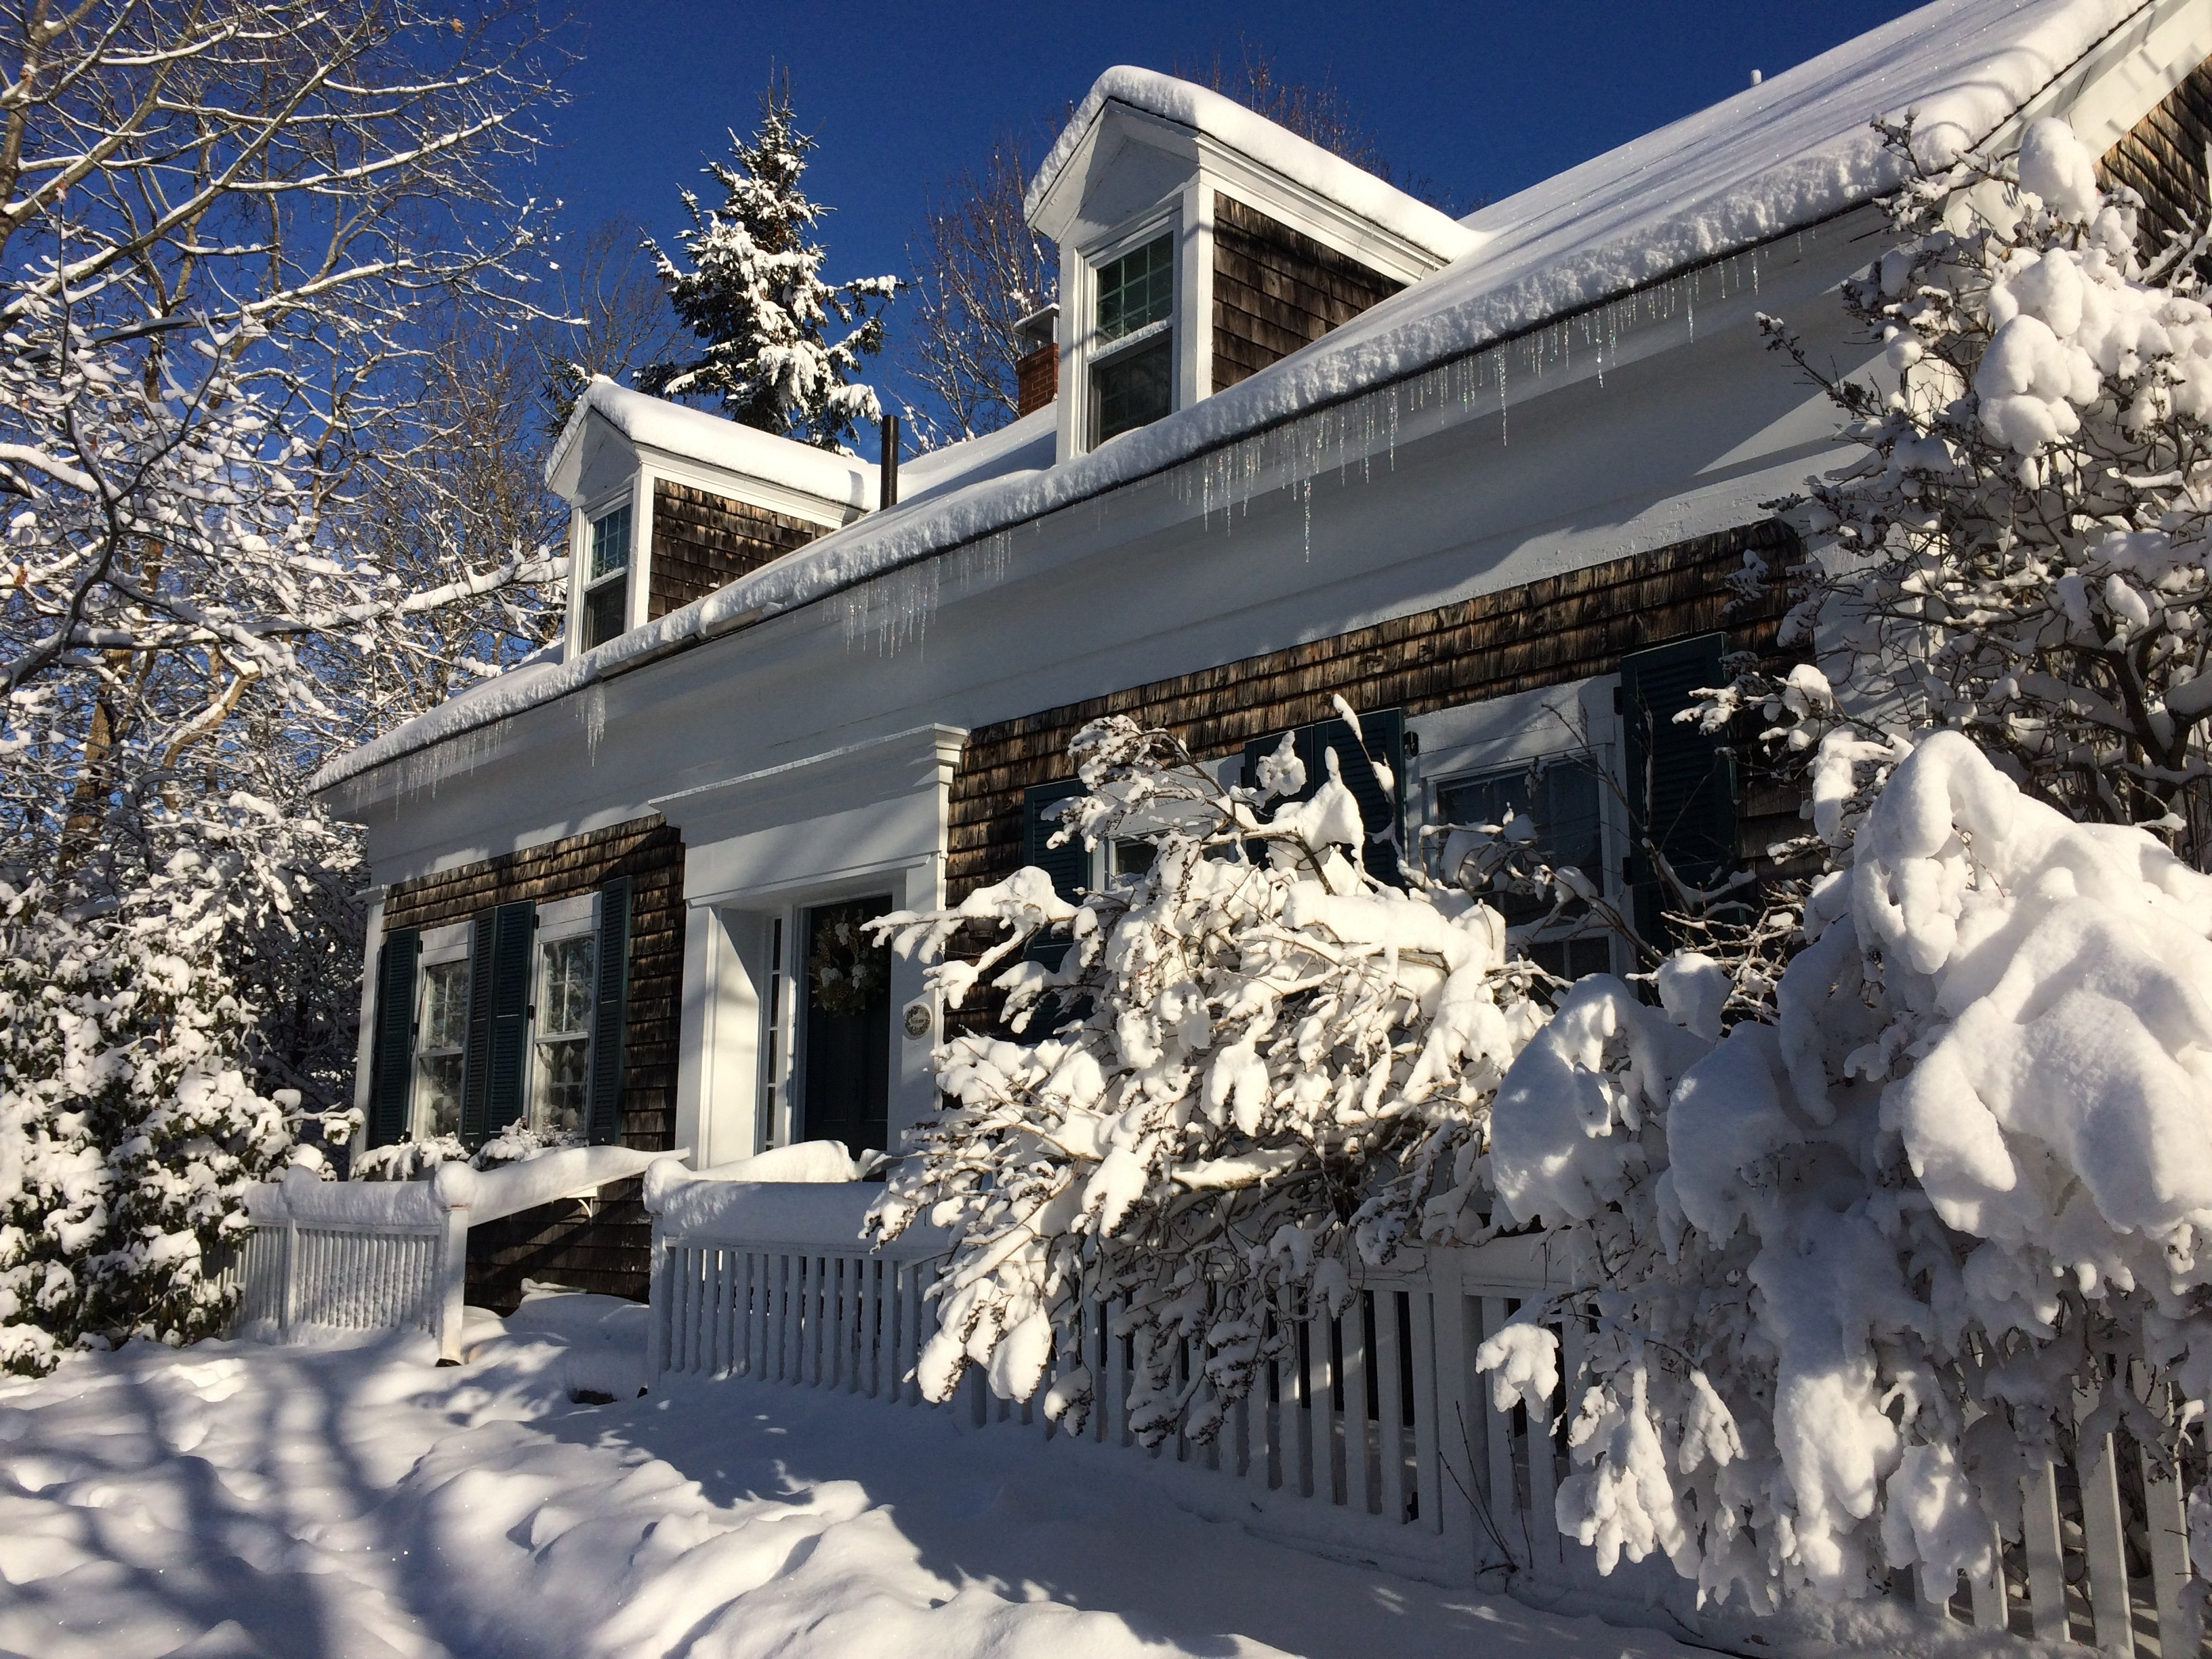 Breakfast at Coach Stop Inn – winter scene with snow